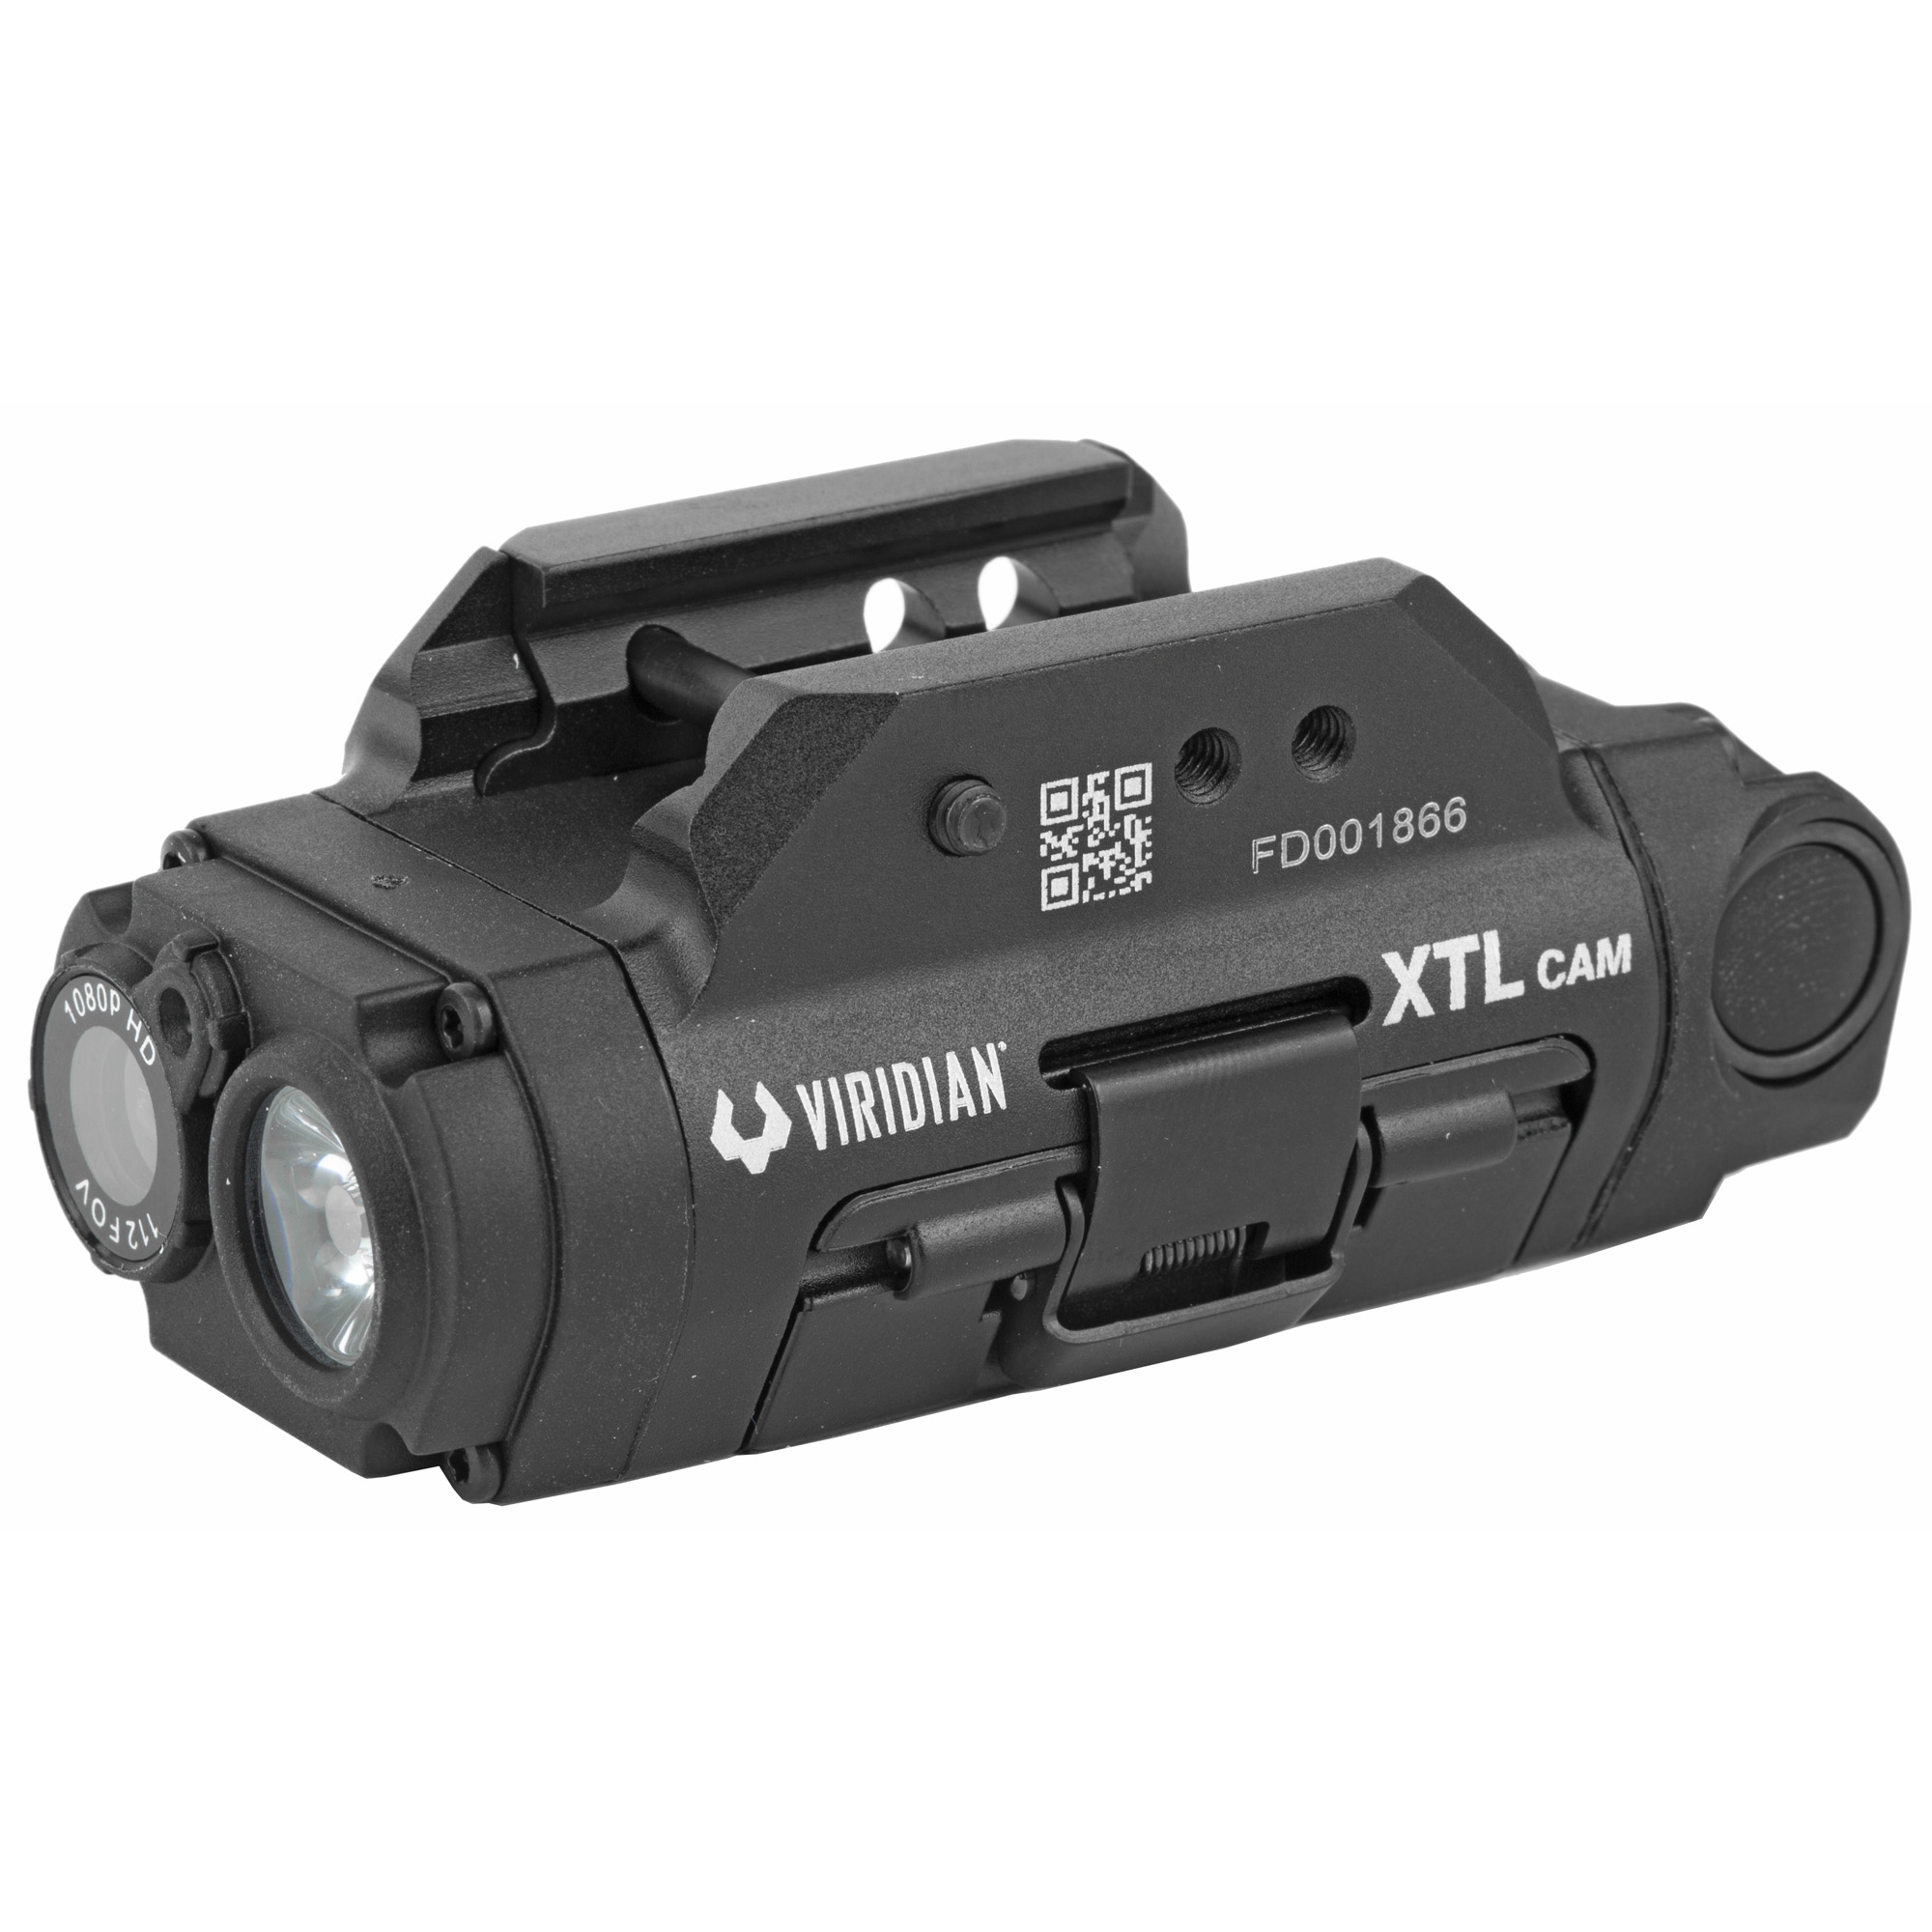 "The new Viridian XTL Gen 3 with camera is the latest version of the legendary X Series. First launched in 2008 this family of products has continued to innovate through the years. The Gen 3 version is no exception. The new XTL Gen 3 with Camera comes standard with a 500 lumen LED light"" multiple operation modes and Viridian's patented INSTANT-ON(R) technology. Combined with a 1080p full-HD digital camera and microphone"" this unique solution provides convenient playback for training"" range time or competitions and gives legally armed citizens an added level of reassurance when carrying or in a home defense situation."